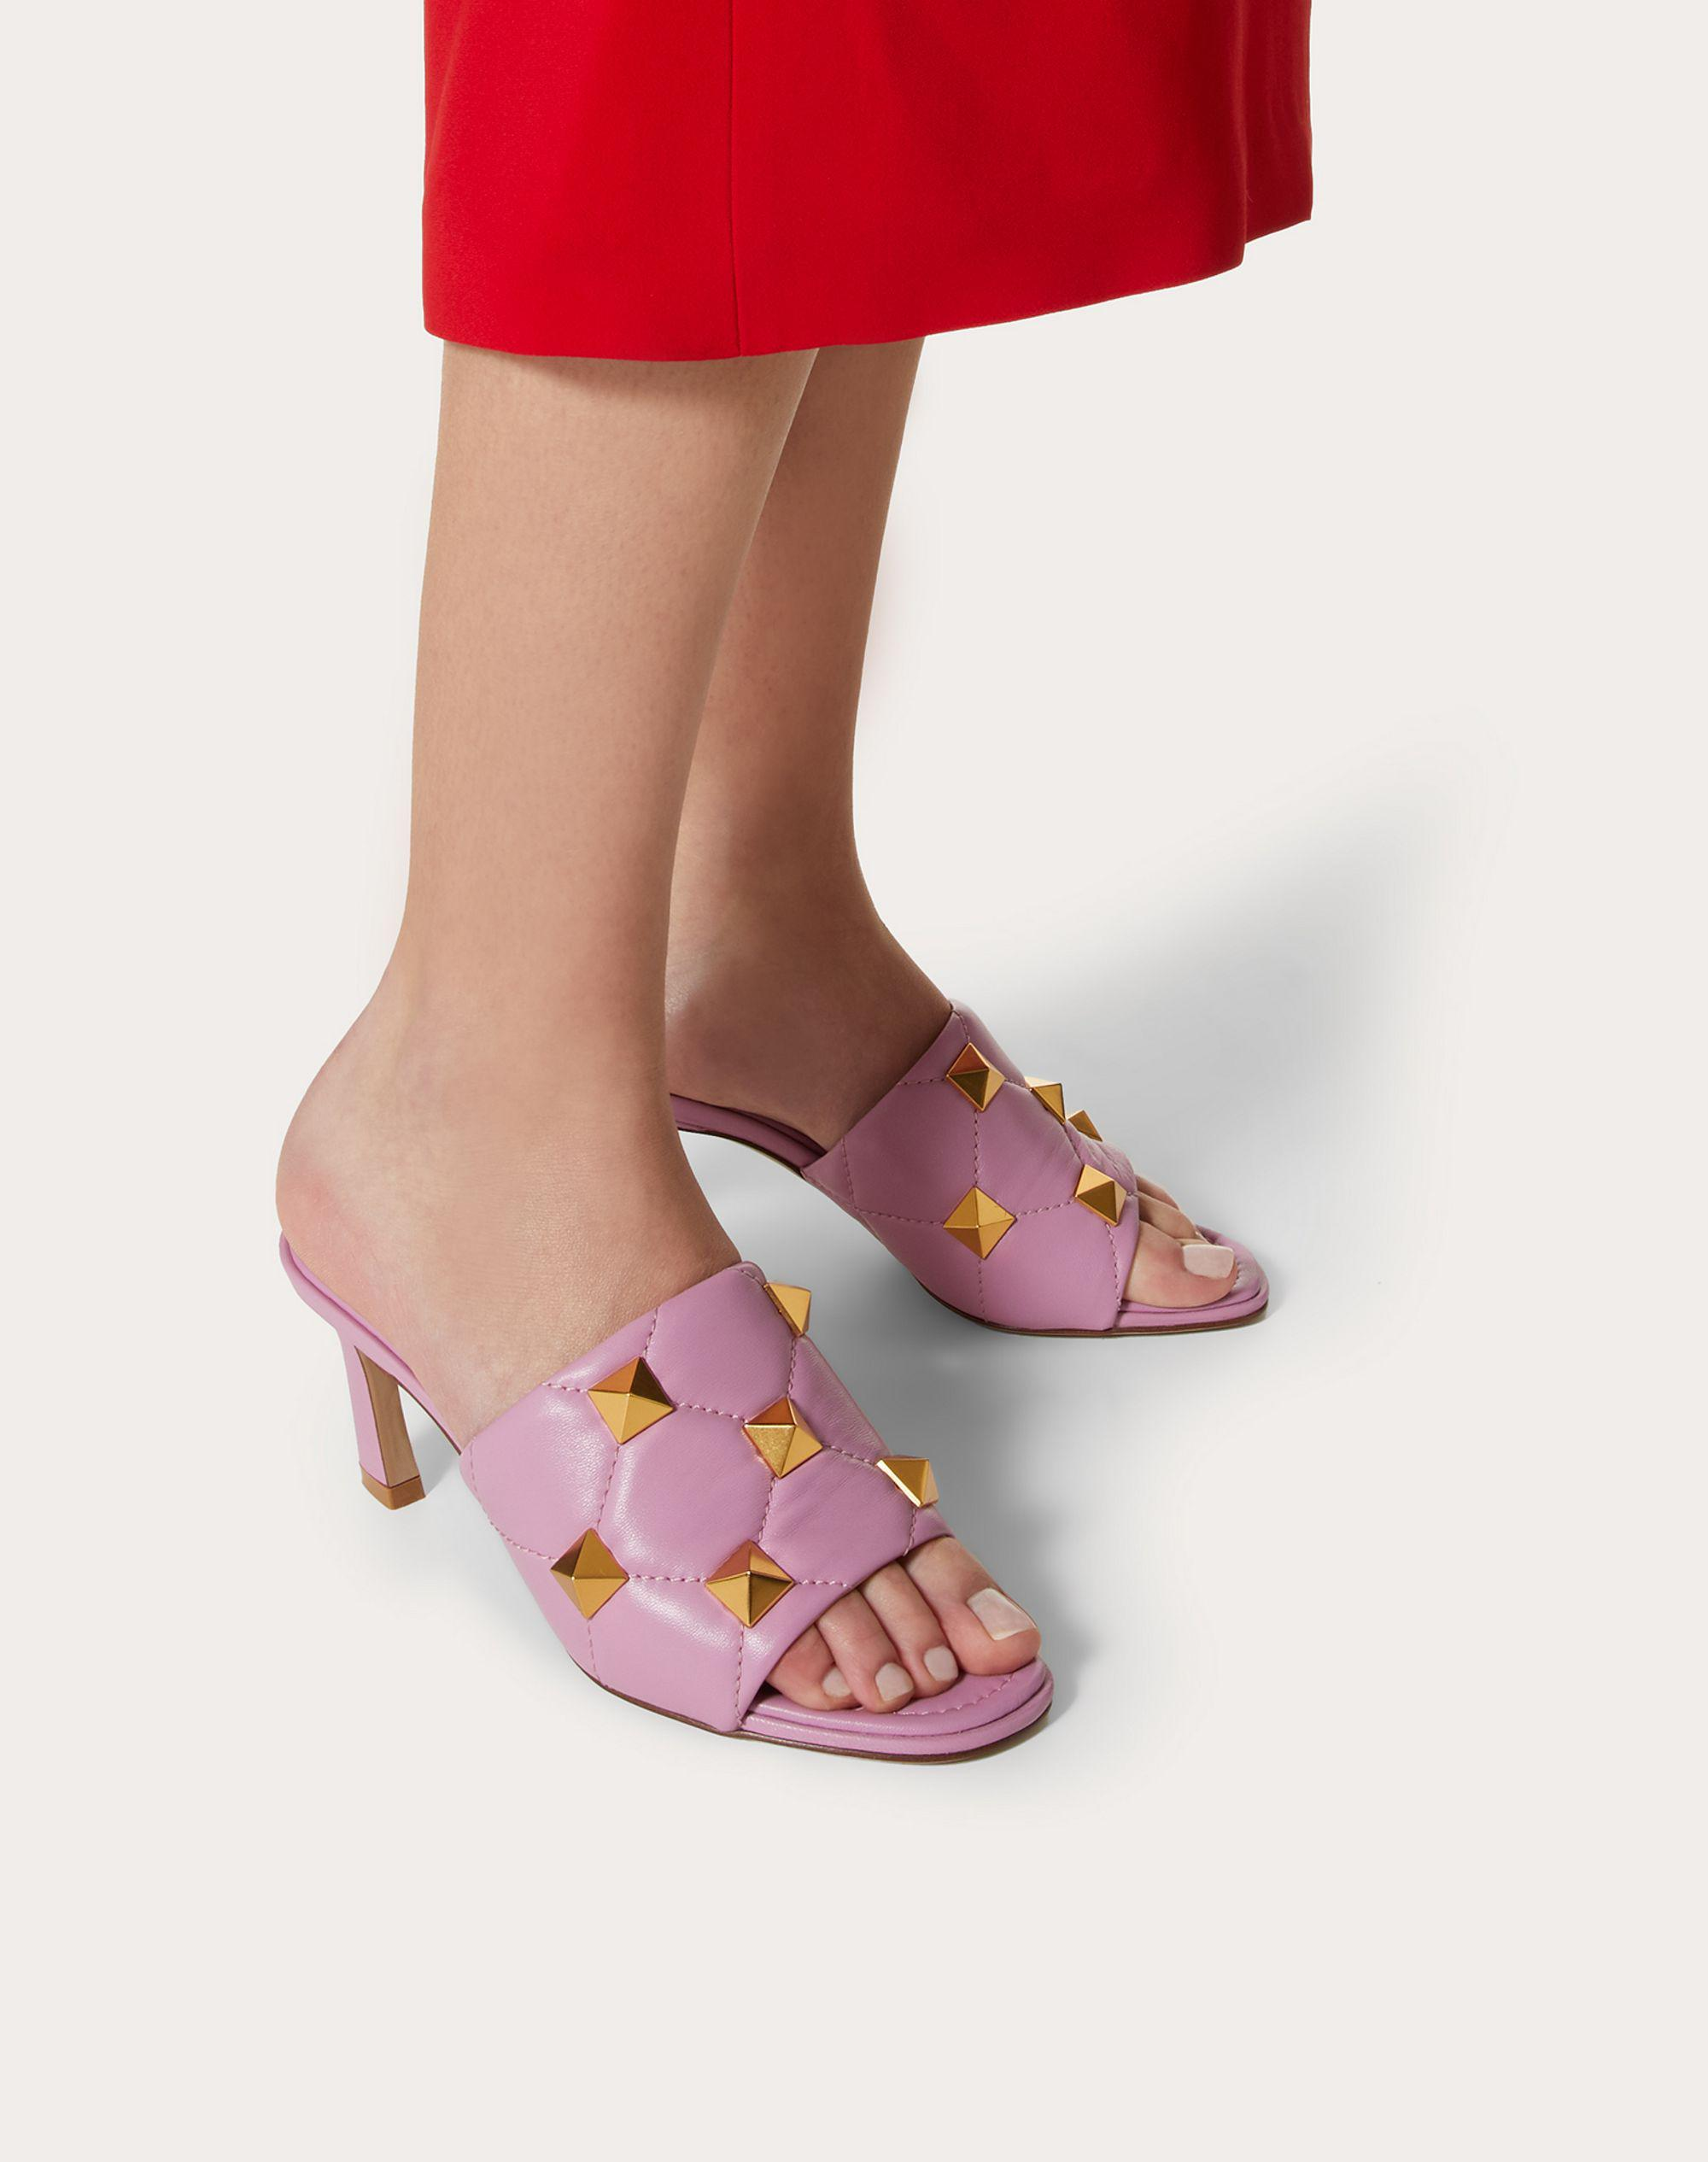 ROMAN STUD SLIDE SANDAL IN QUILTED NAPPA 65 MM 5